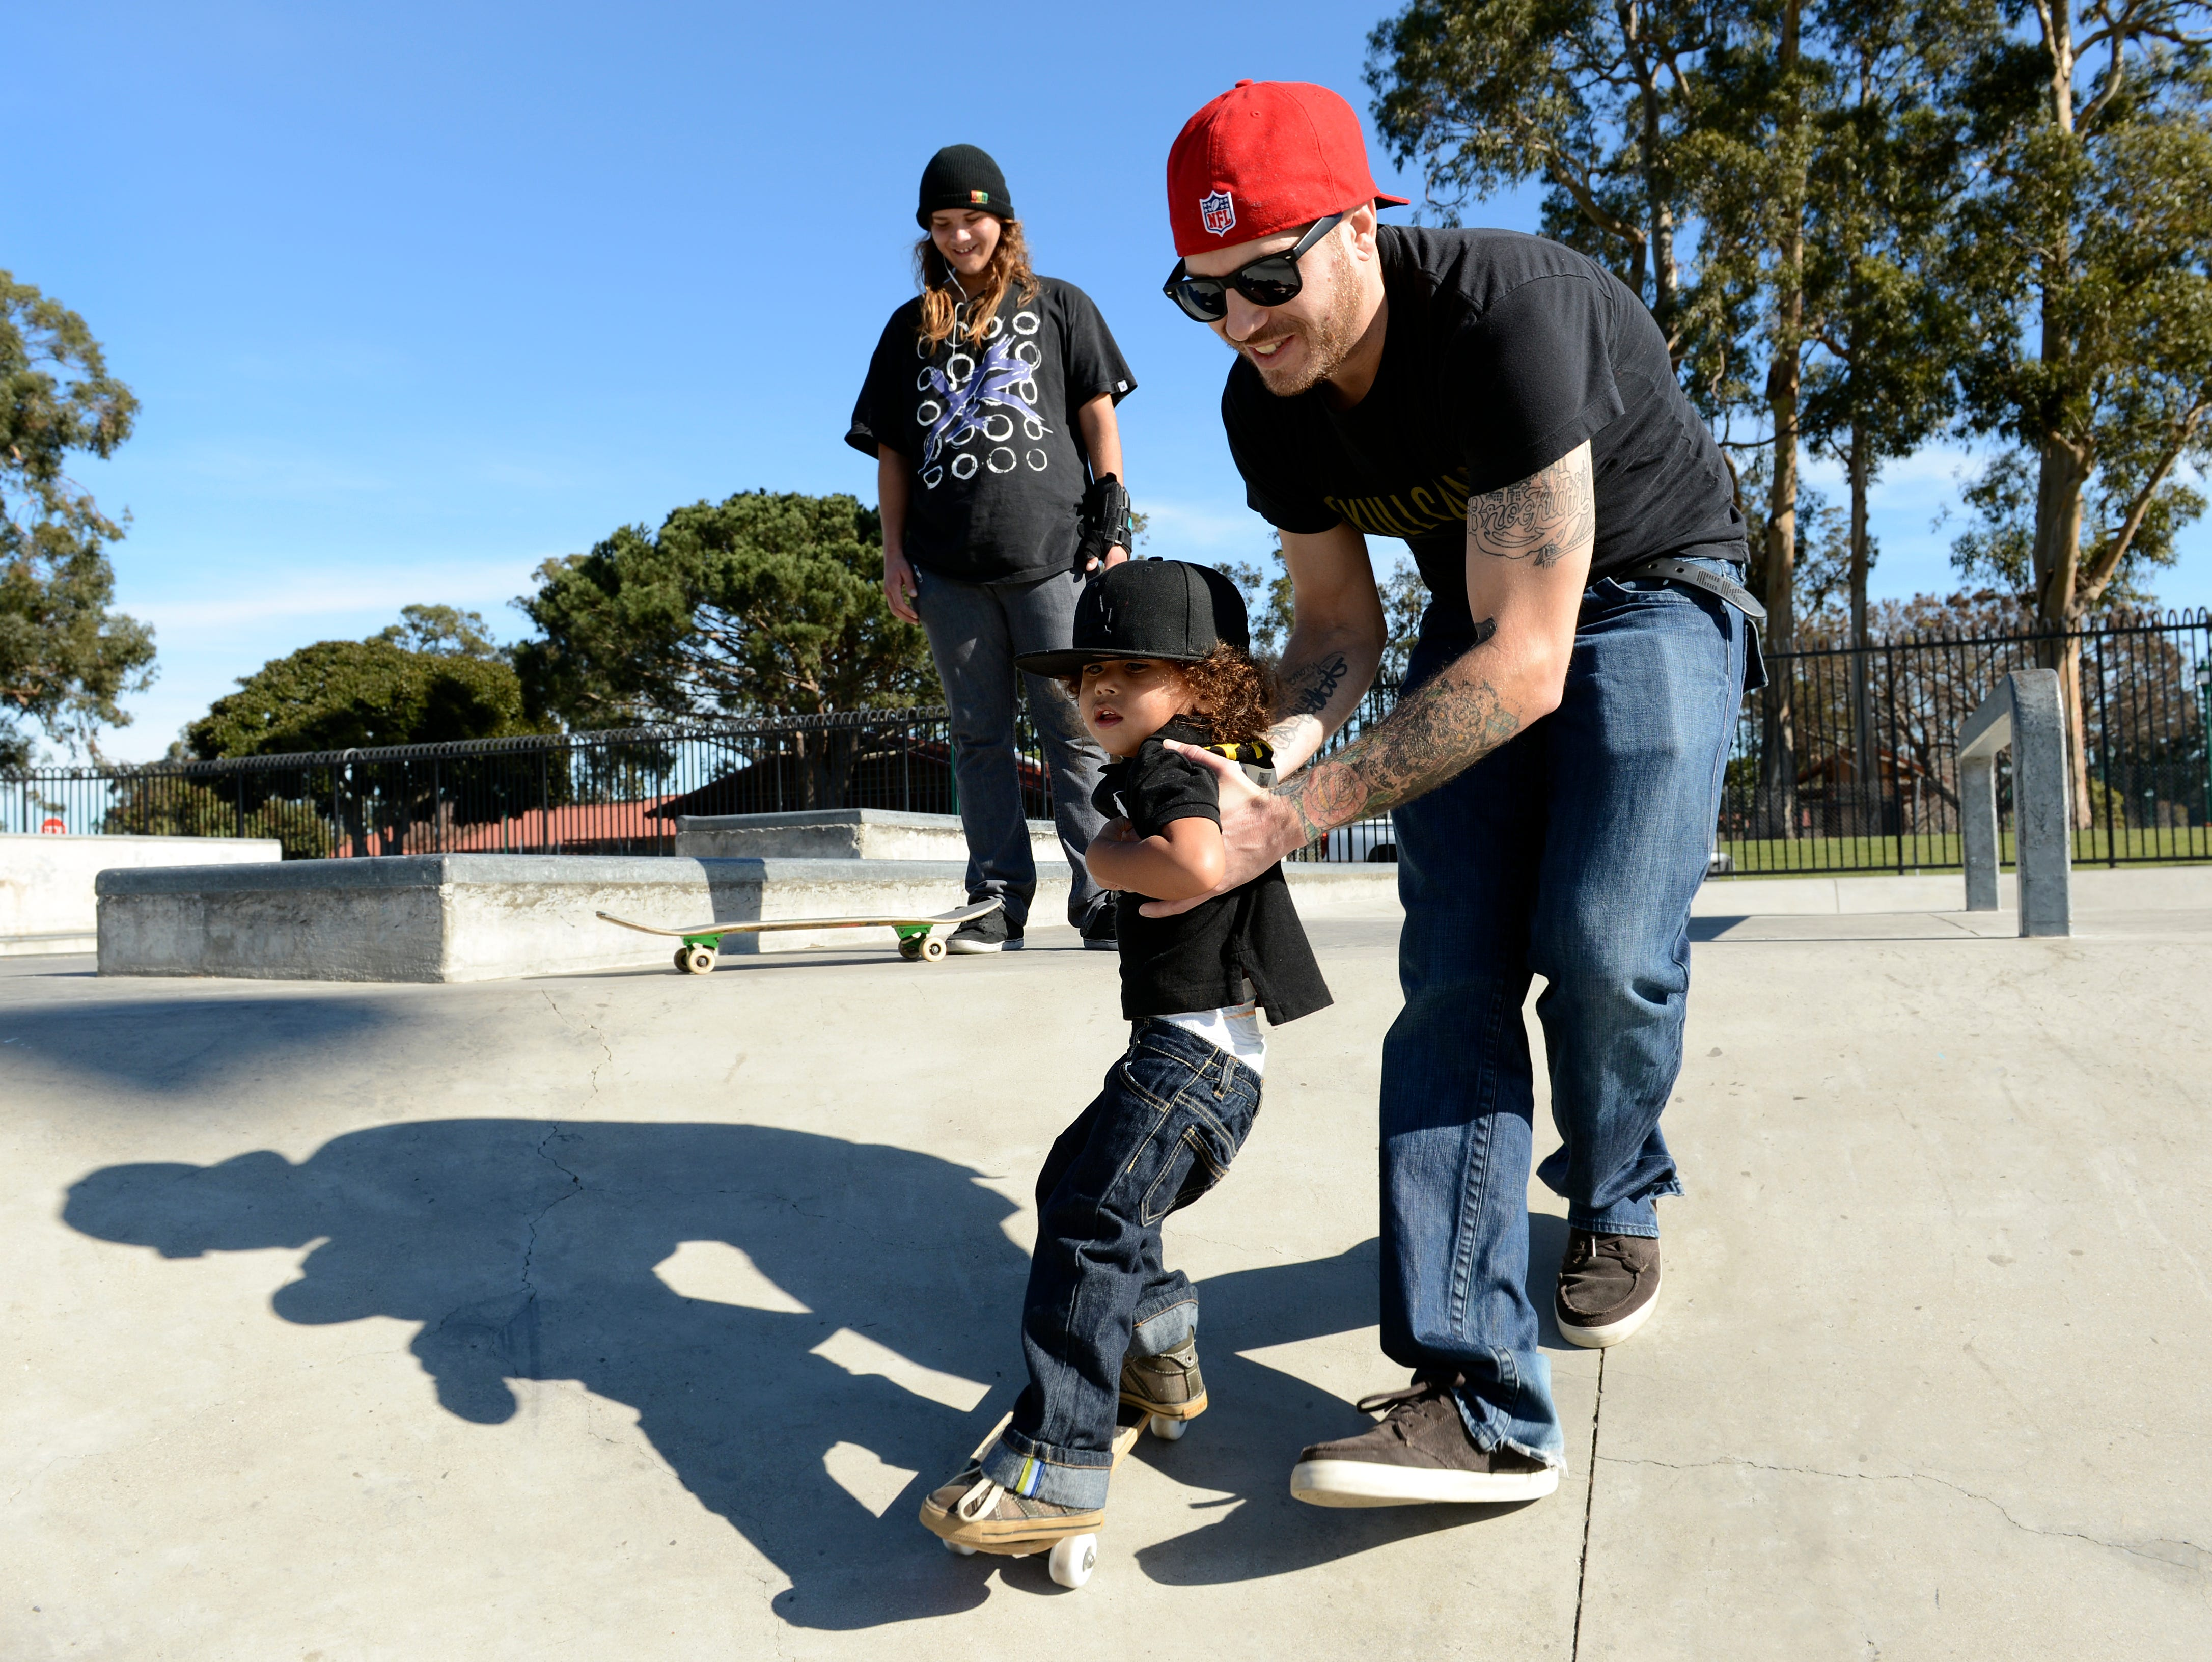 A toddler gets help on the skateboard from his father in this 2013 photo. The Oxnard skatepark is named after former Councilman Bedford Pinkard.